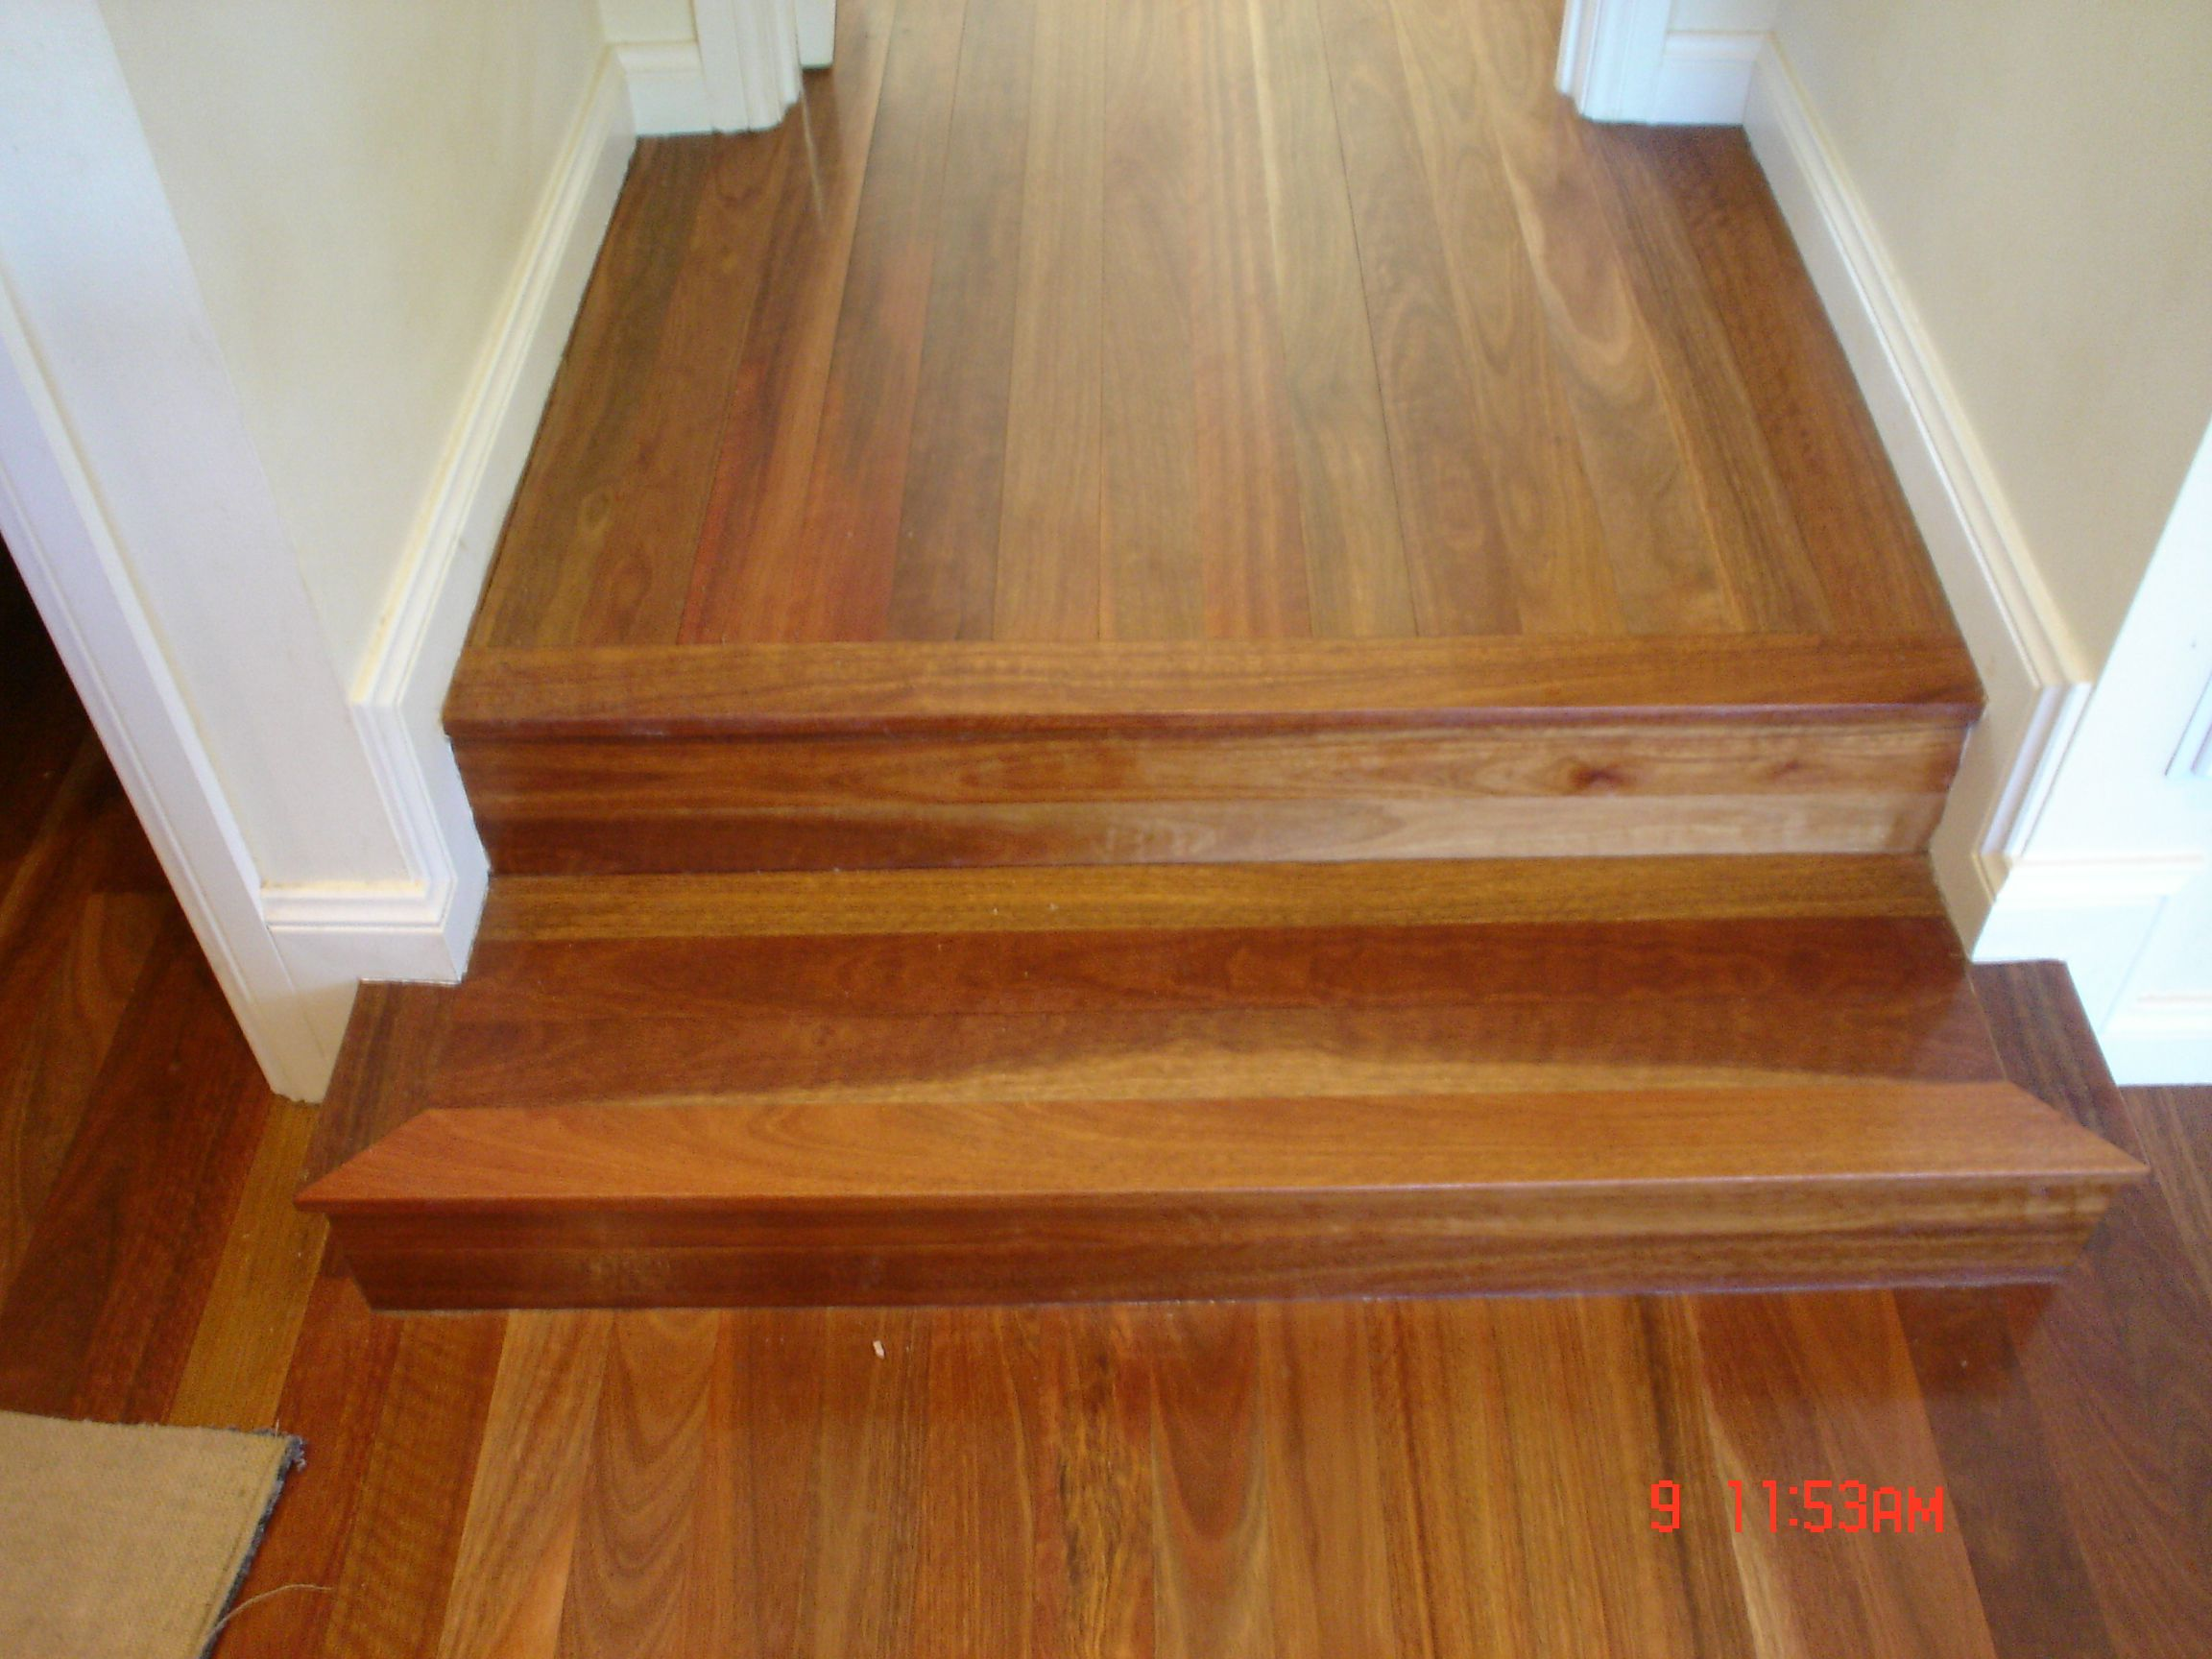 Steps Formed Using Tongue And Groove Floorboards Works Effectively For Step Ups To Areas Of Timber Flo Timber Stair Installing Hardwood Floors Timber Flooring